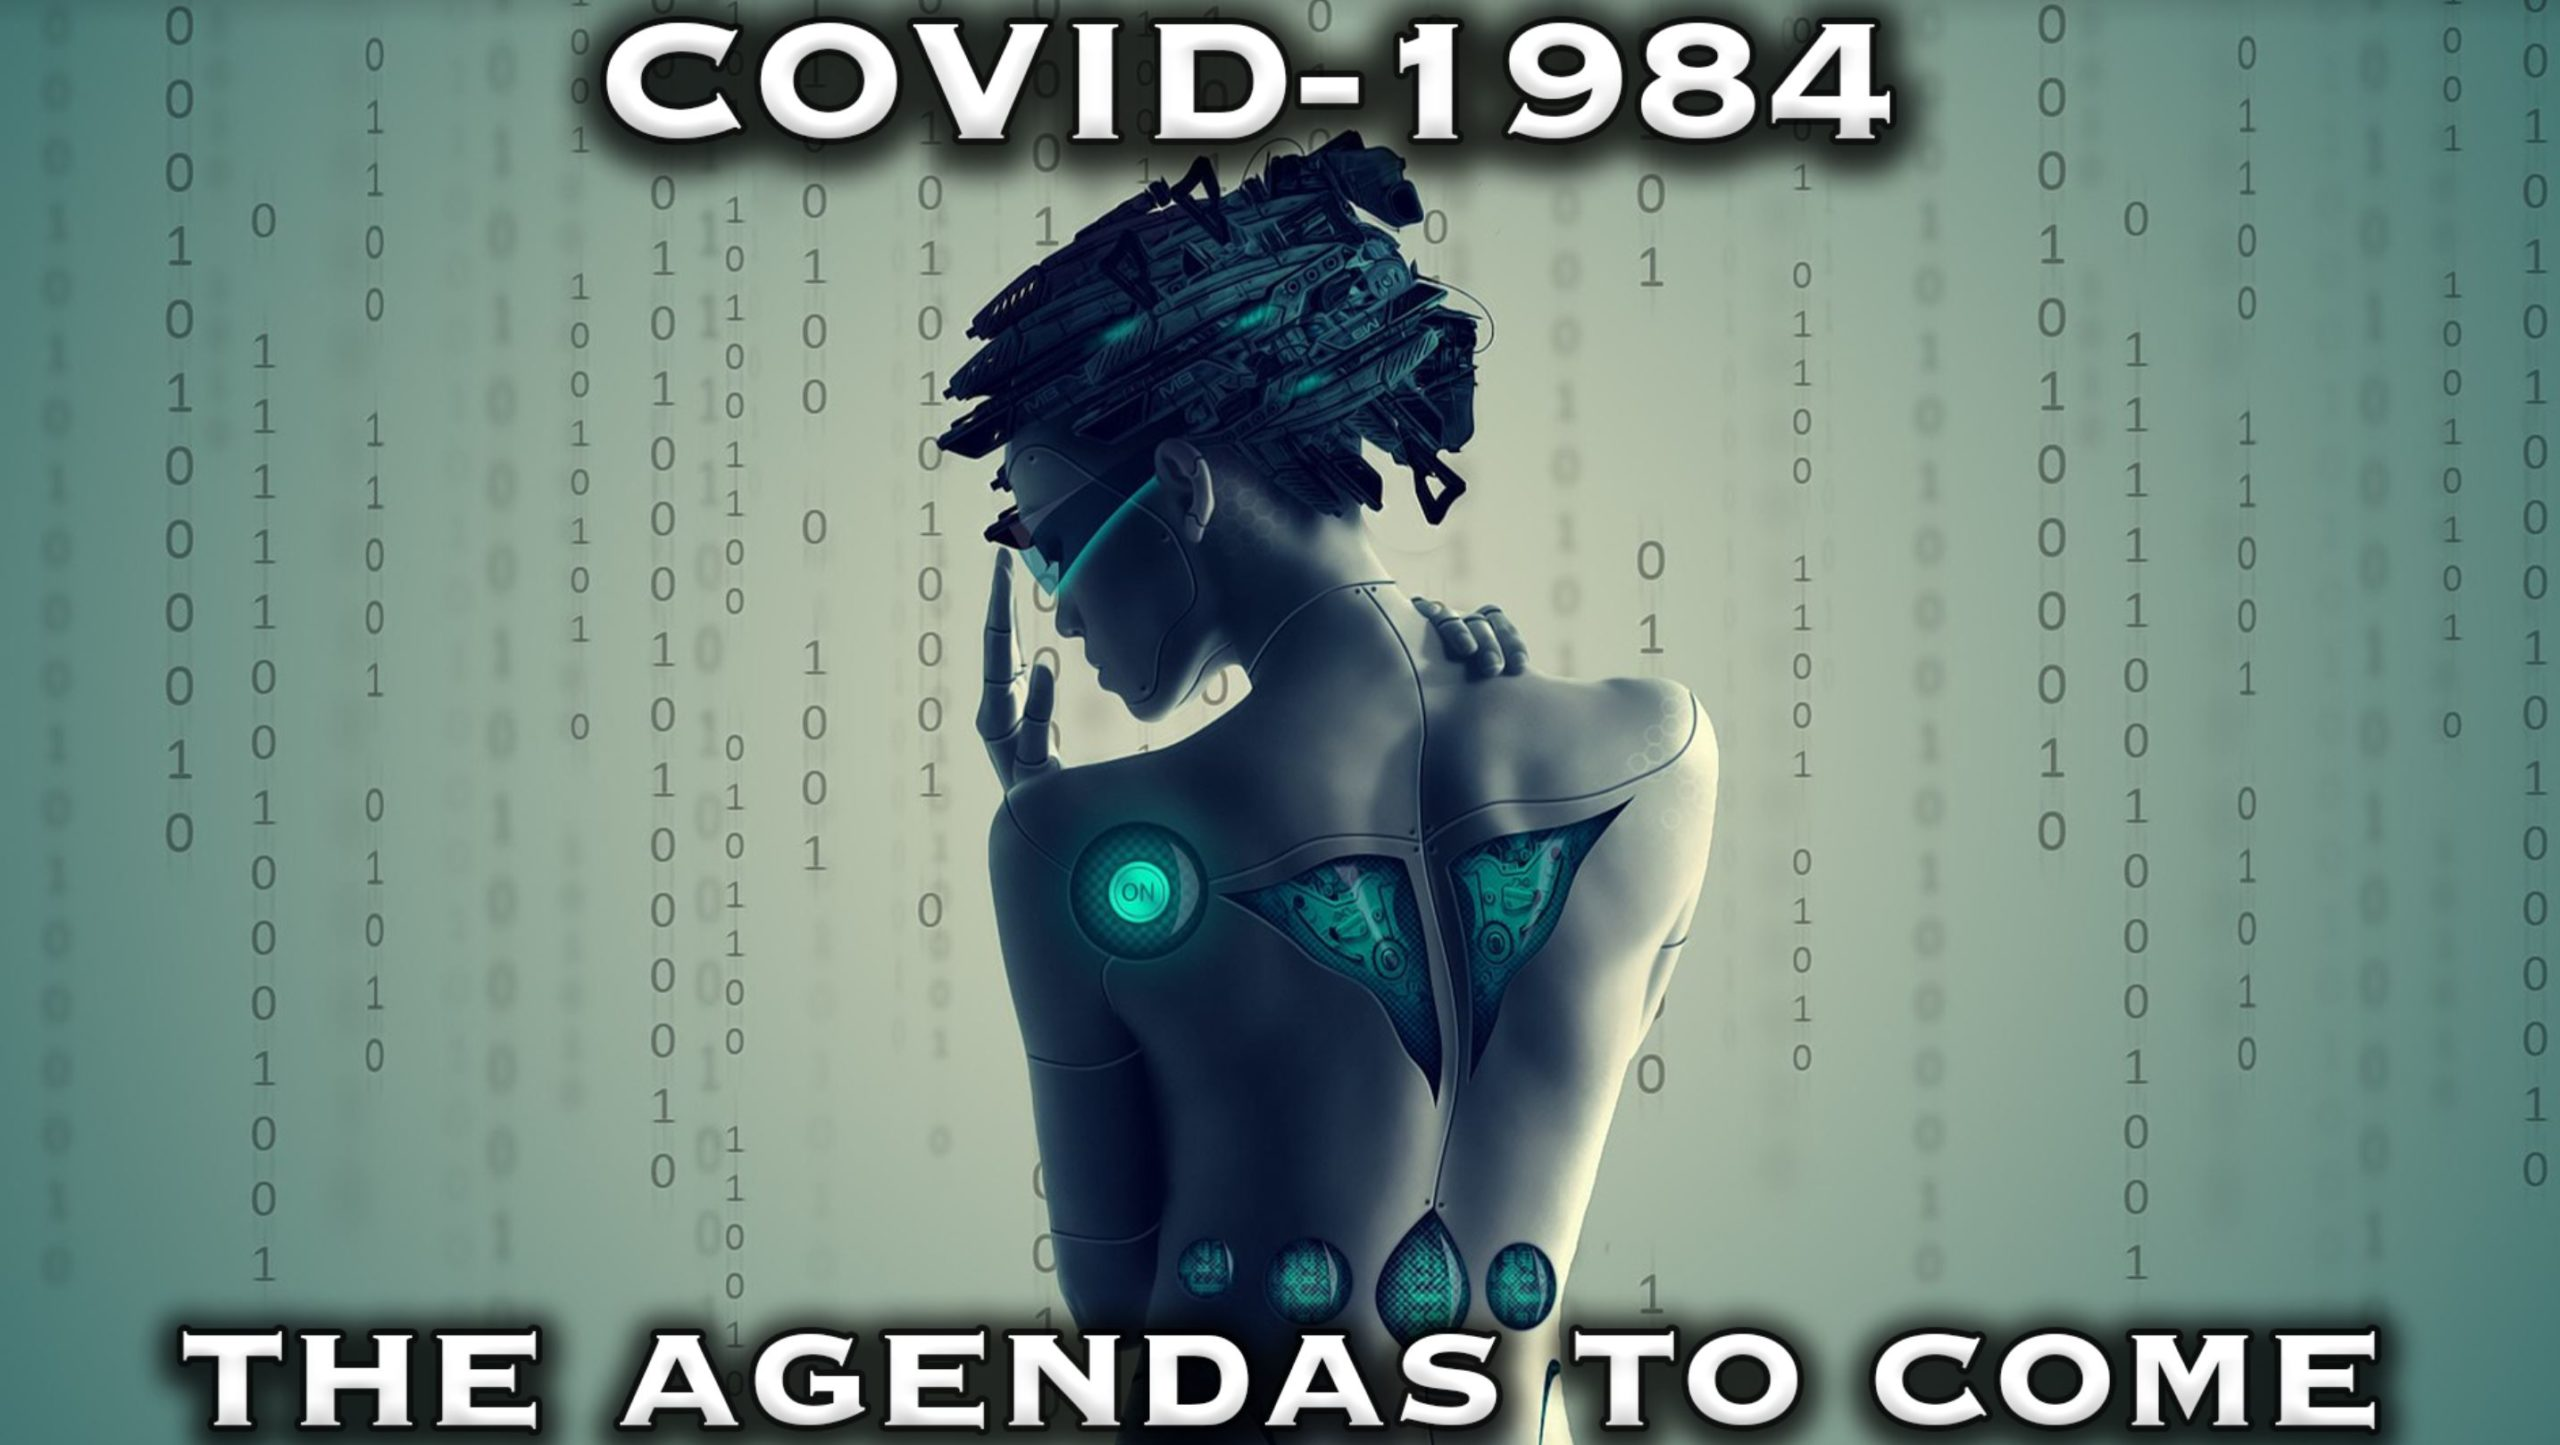 Covid-1984 And The Agendas To Come with James Perloff